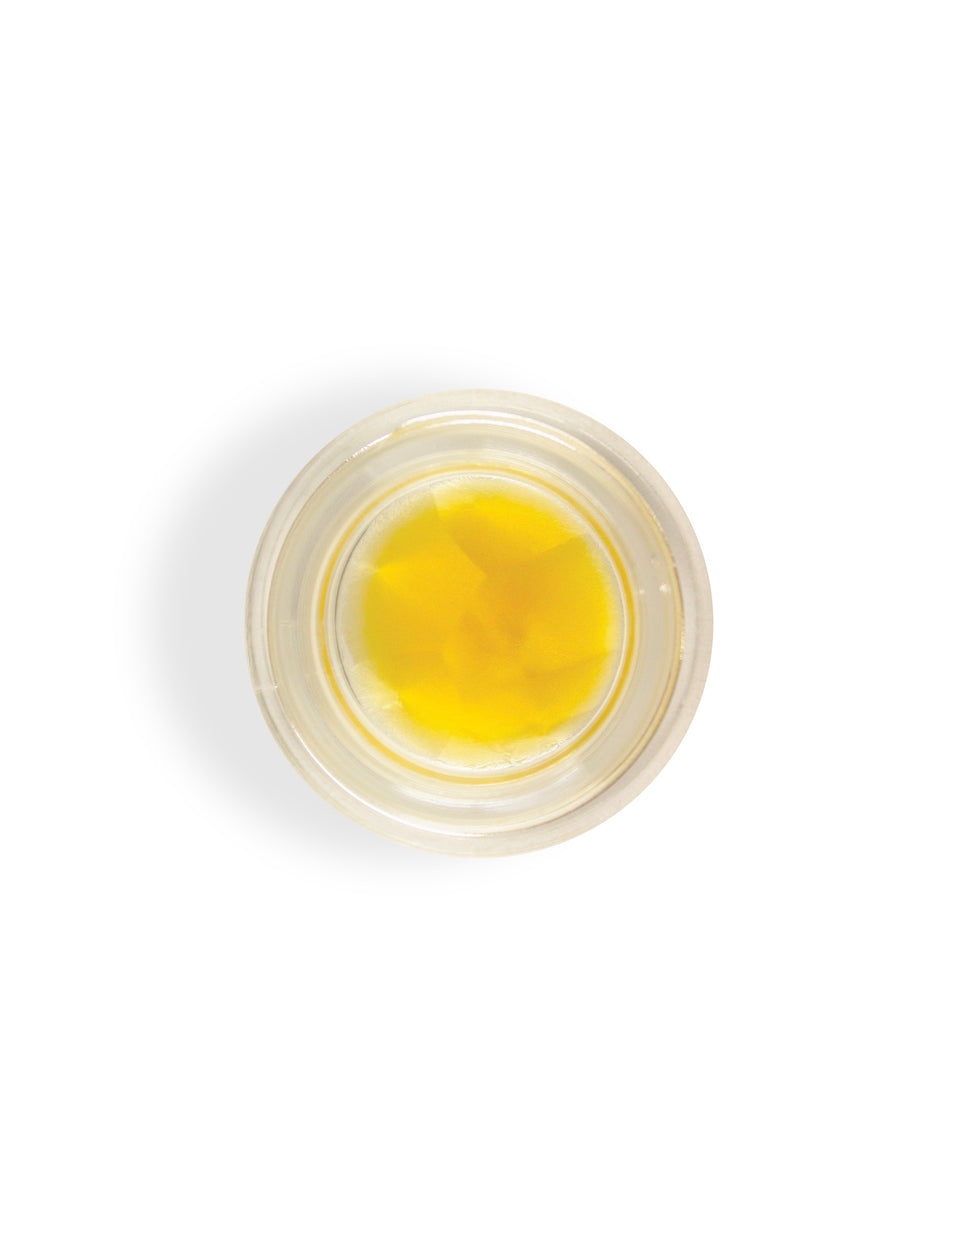 OG Kush Concentrate 1g, 77.38% CBD